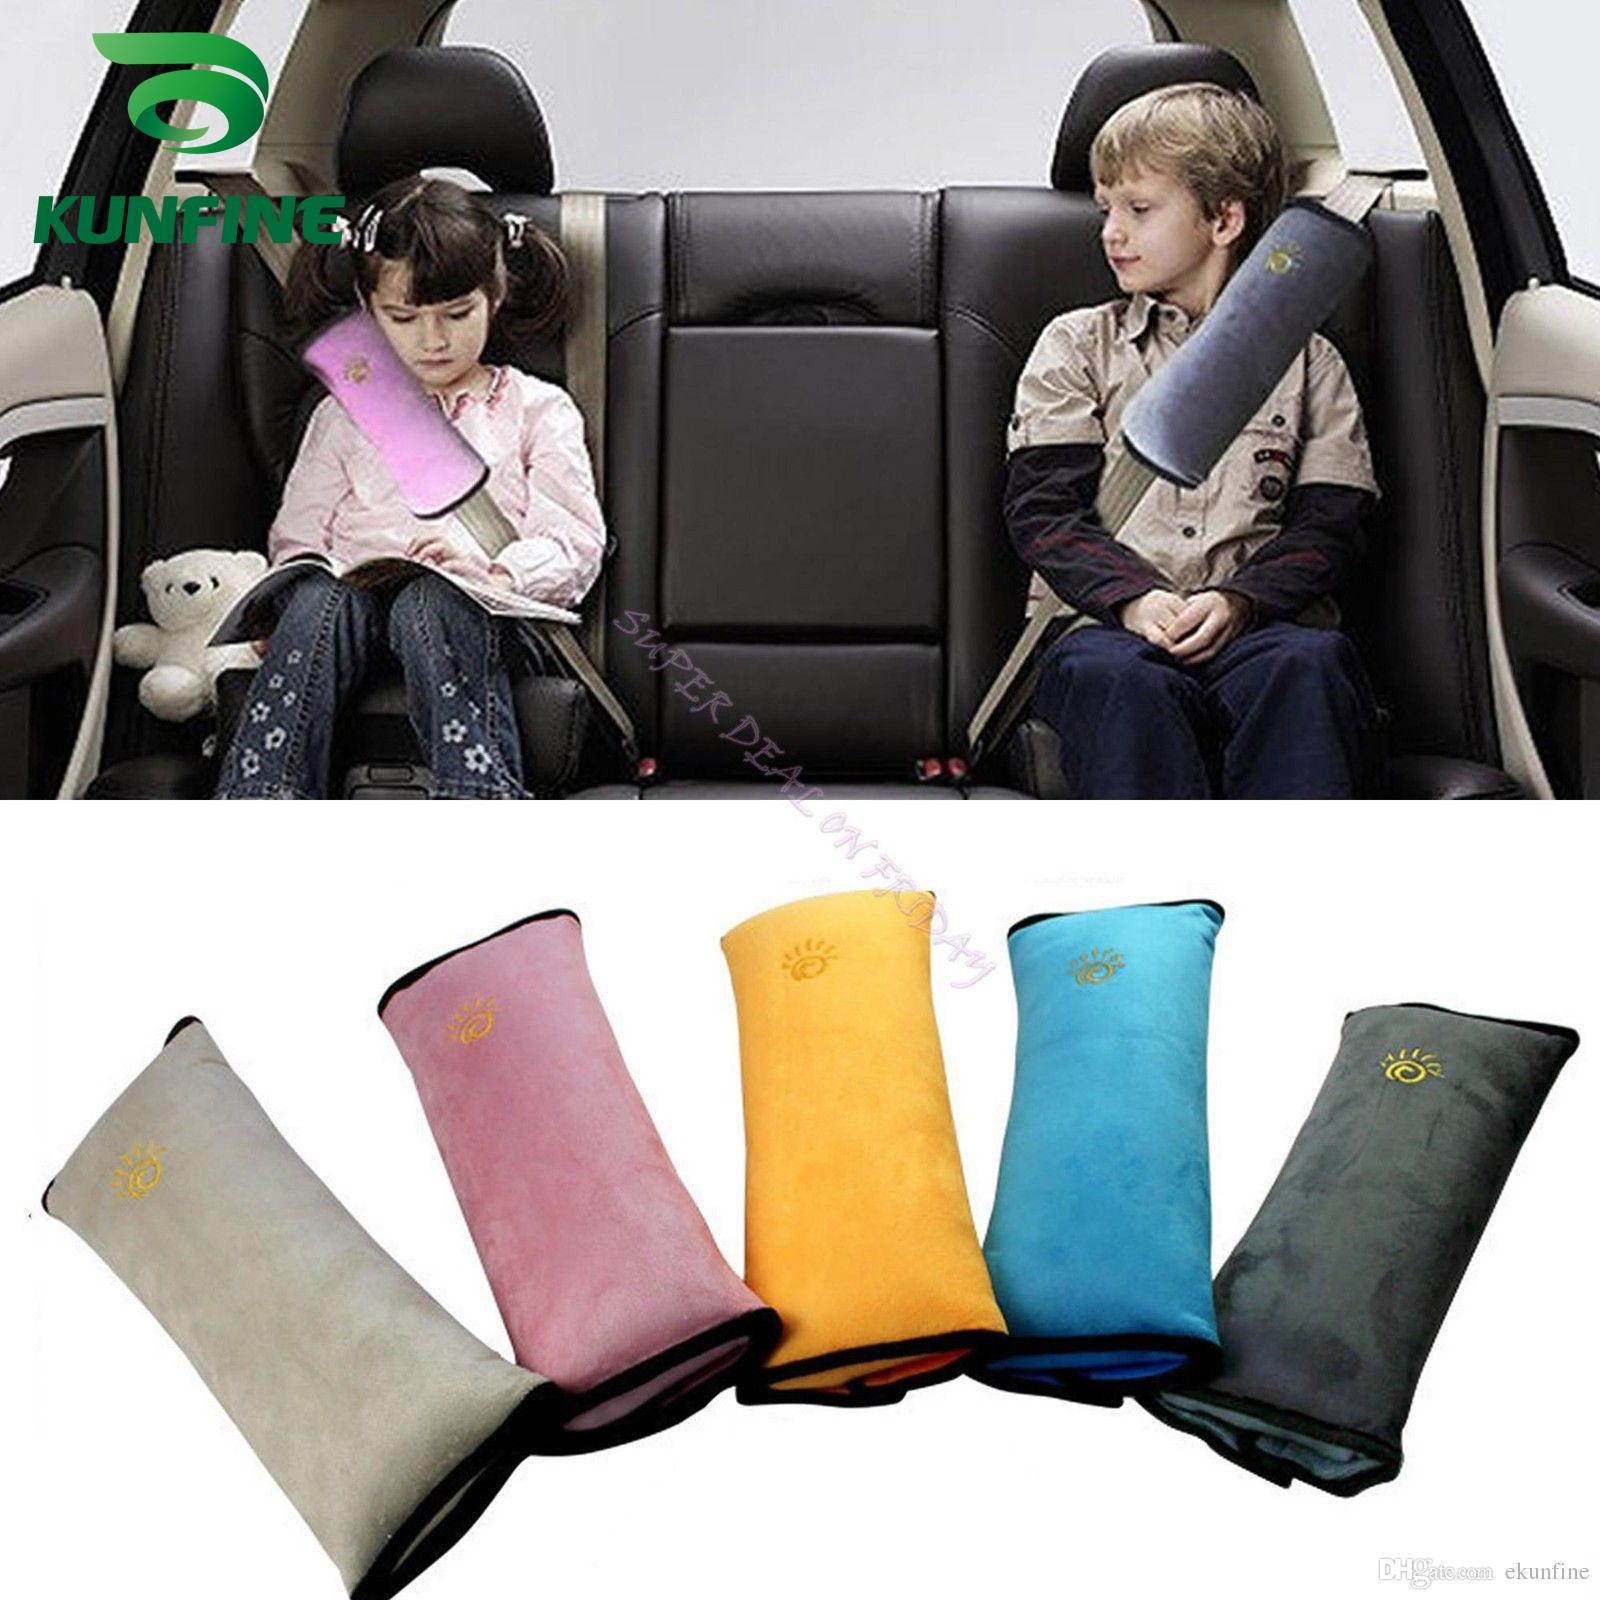 2018 Soft Baby Car Safety Seat Belt Harness Shoulder Pad Cushion Neck Seatbelt For Children Protection KF A1064 From Ekunfine 483